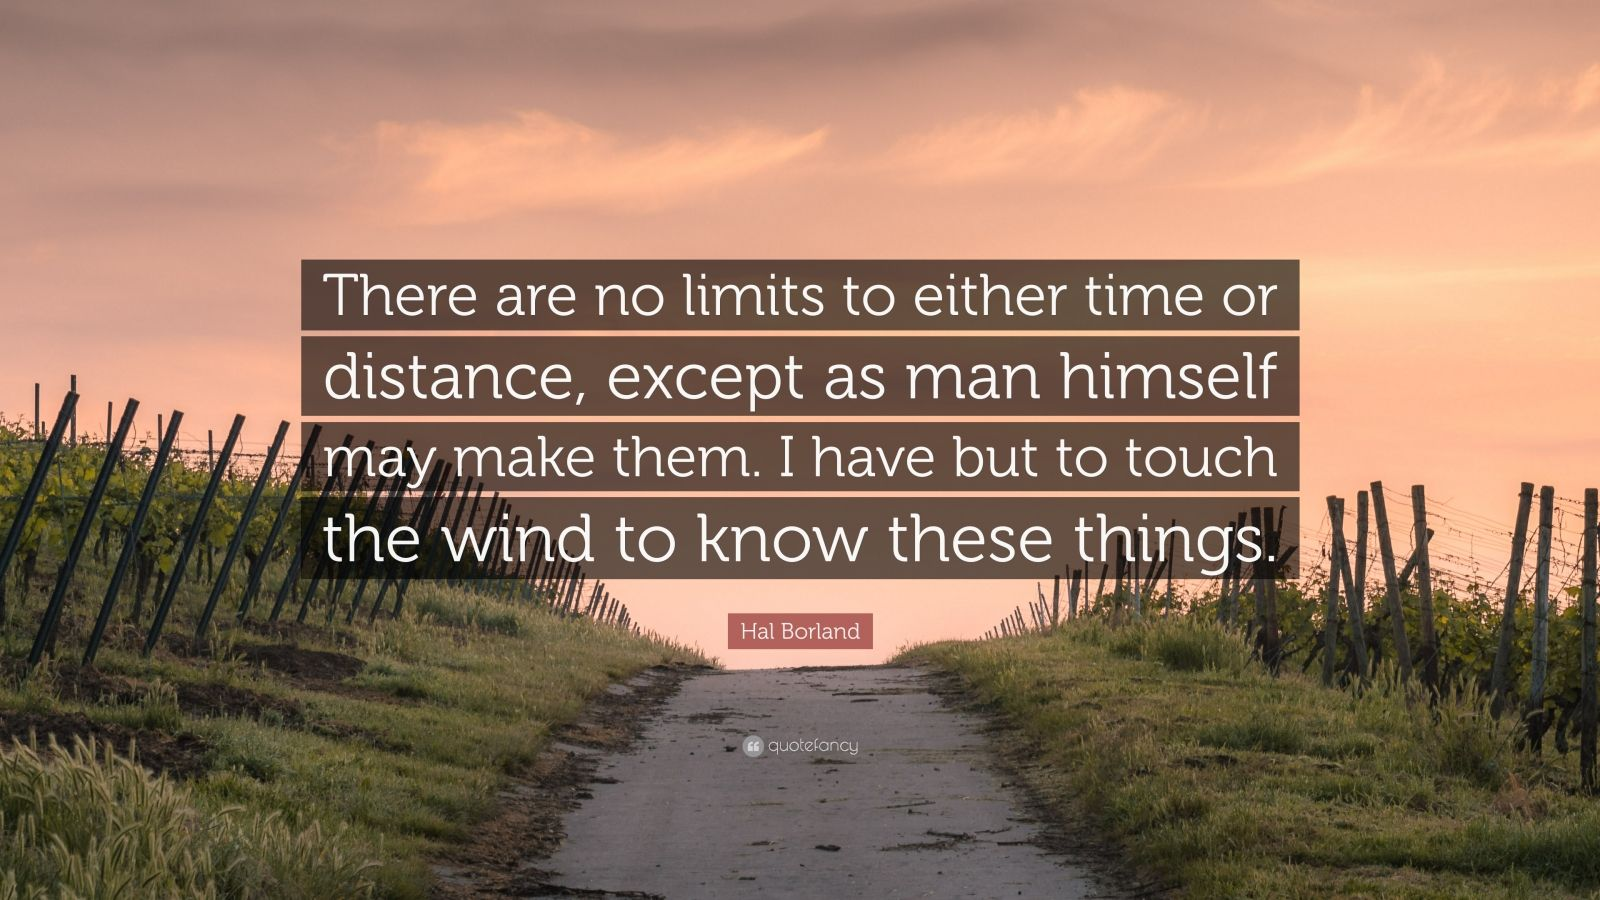 """Hal Borland Quote: """"There are no limits to either time or distance, except as man himself may make them. I have but to touch the wind to know these things."""""""